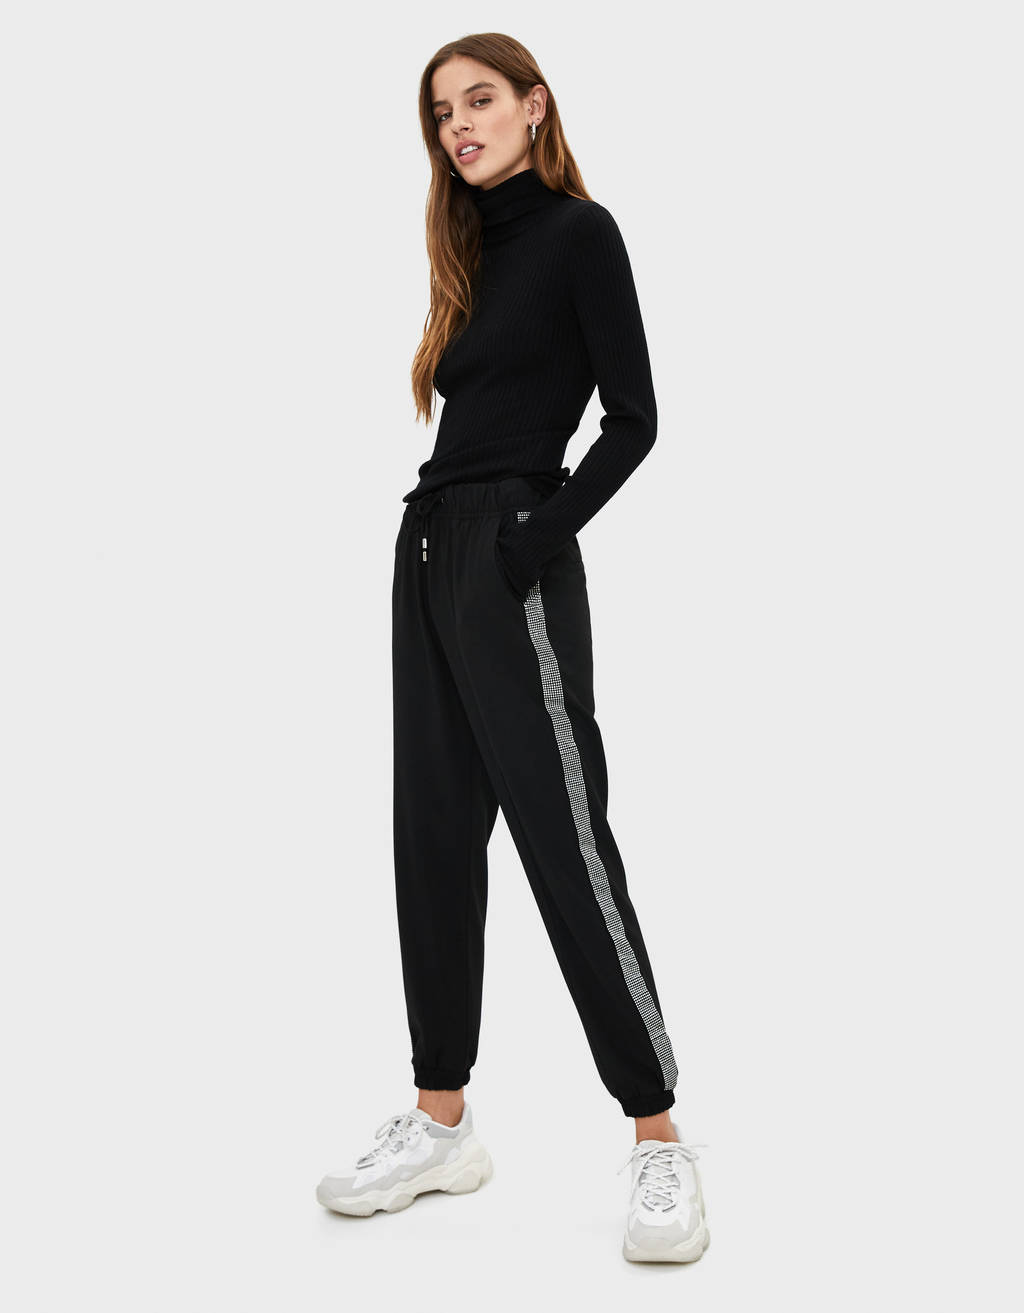 Jogging trousers with shimmer side stripes